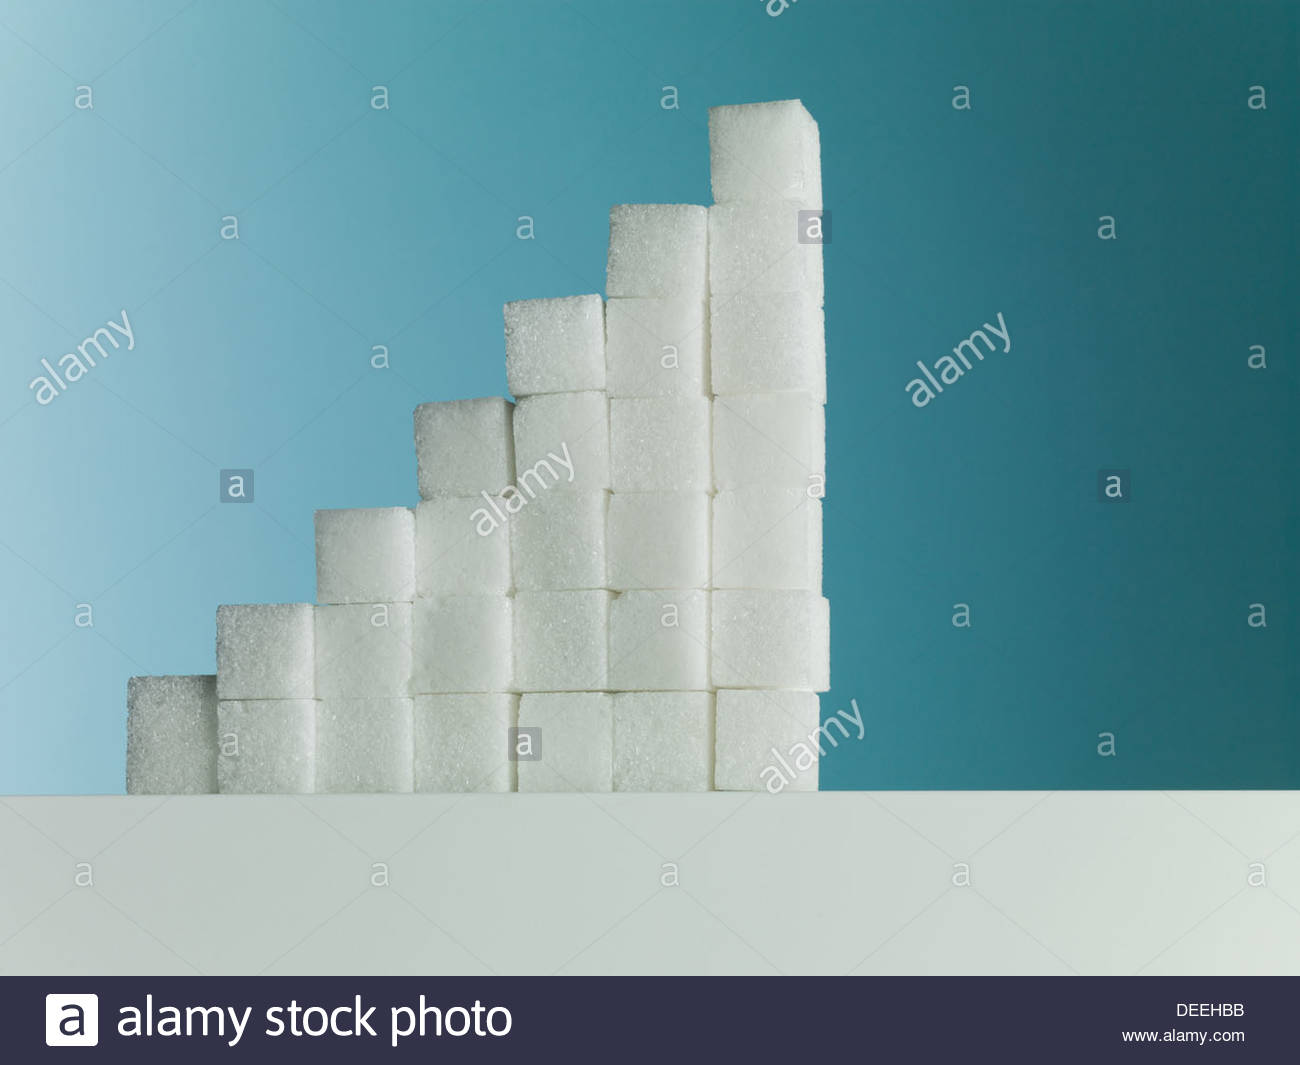 Row of ascending stacks of sugar cubes - Stock Image